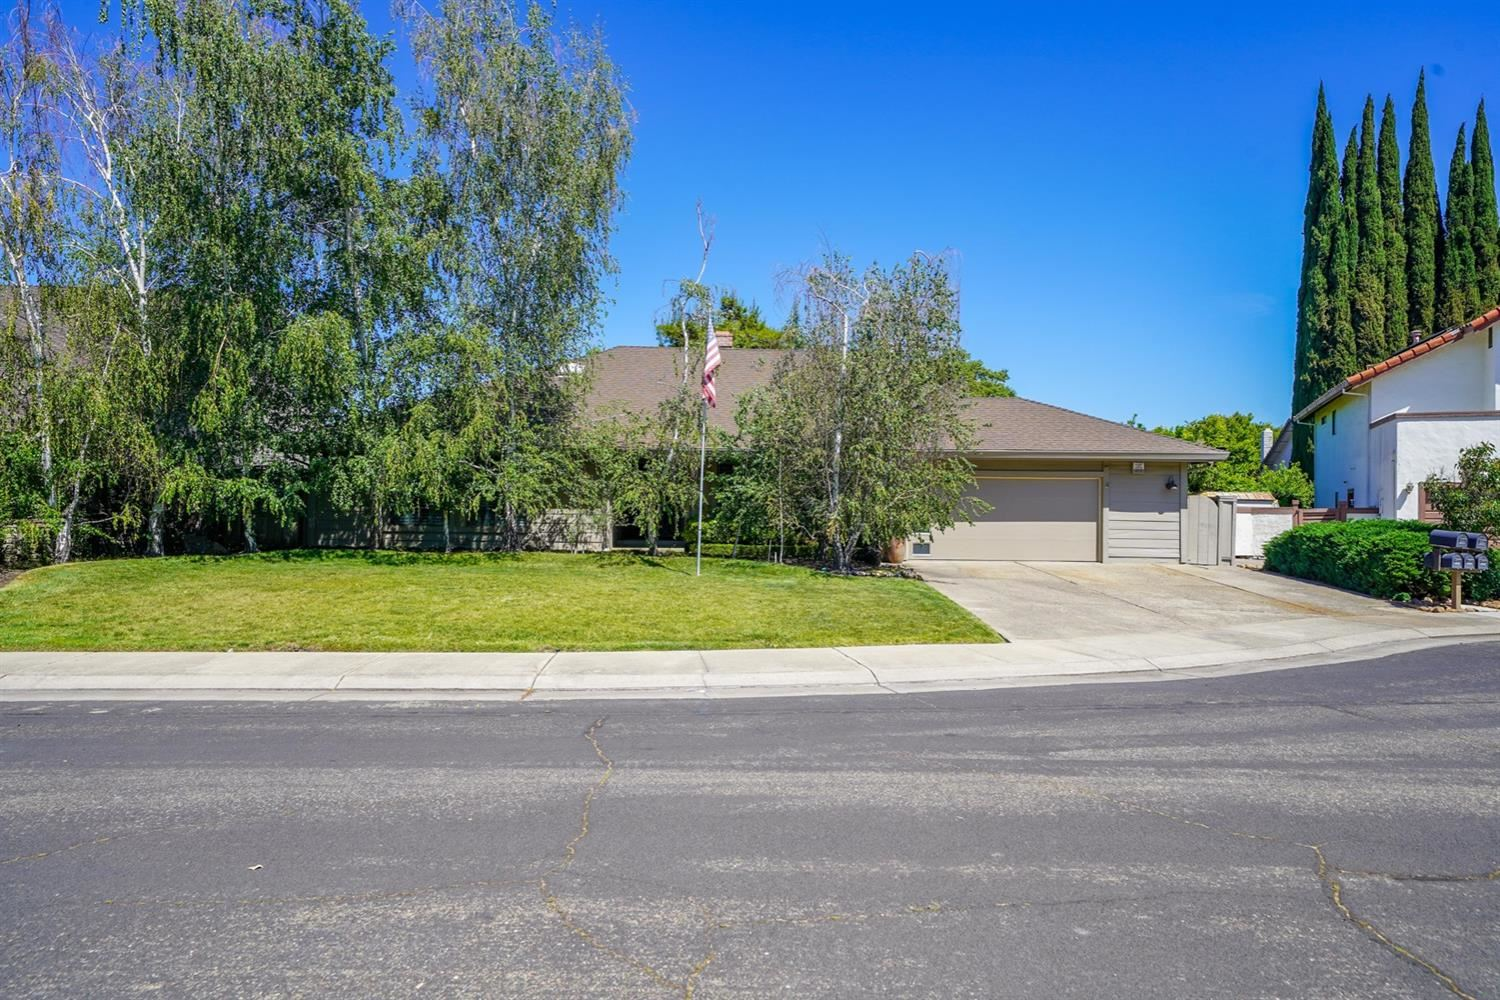 Photo of 1717 Fluetsch Court, Stockton, CA 95207 (MLS # 221049778)